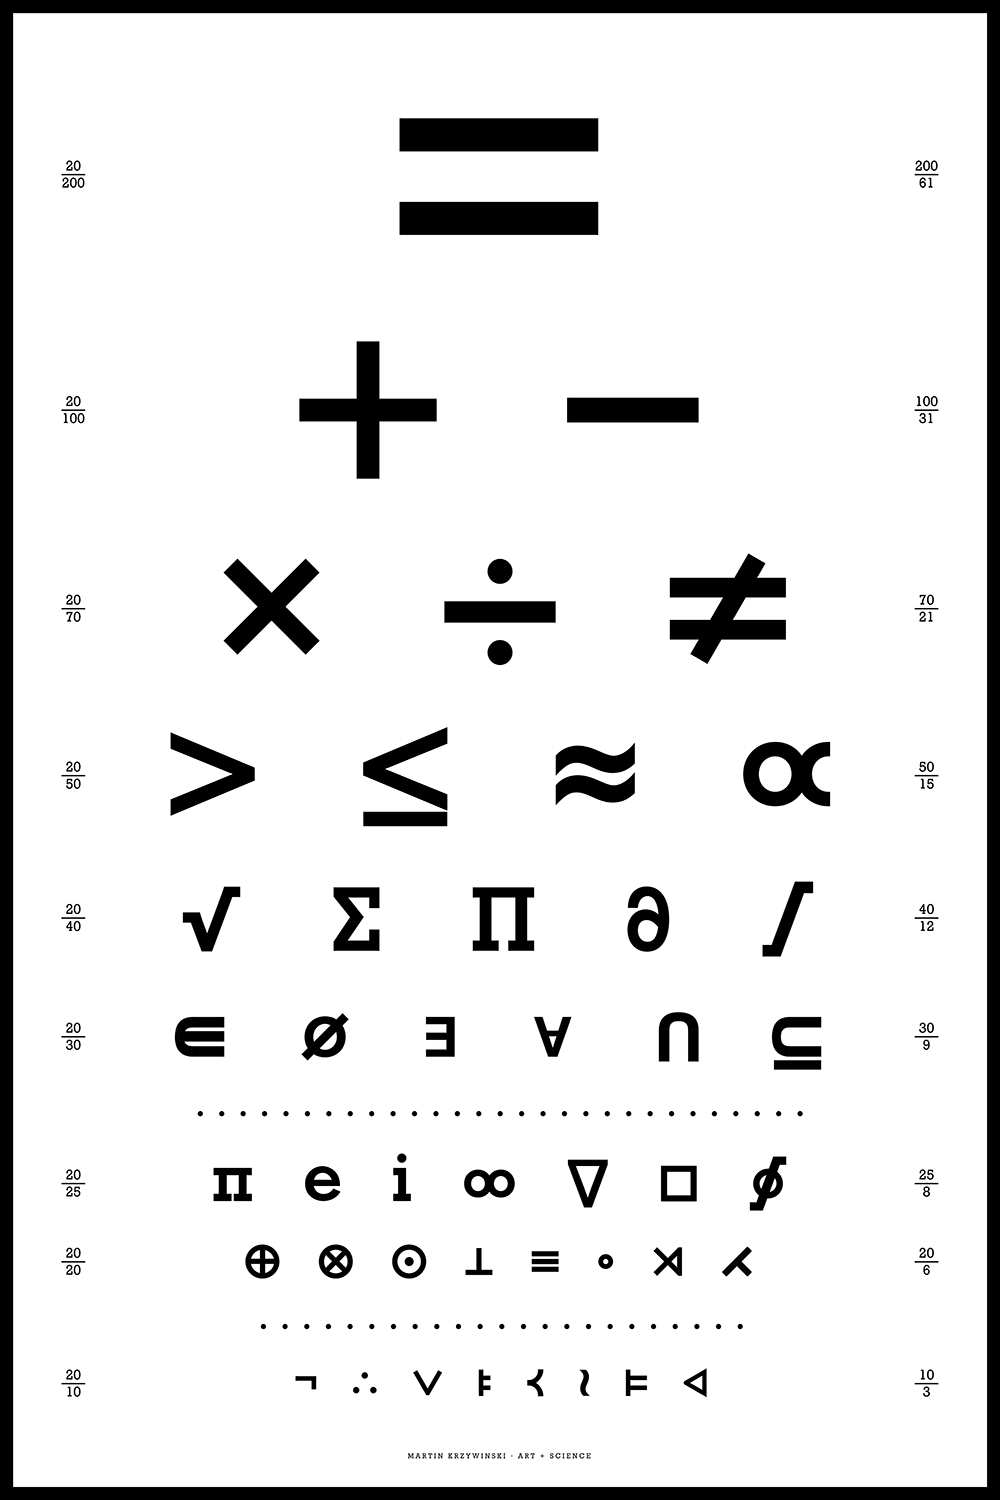 Data visualization design and information munging martin typographical posters of how the world works in the style of snellen eye charts martin nvjuhfo Image collections